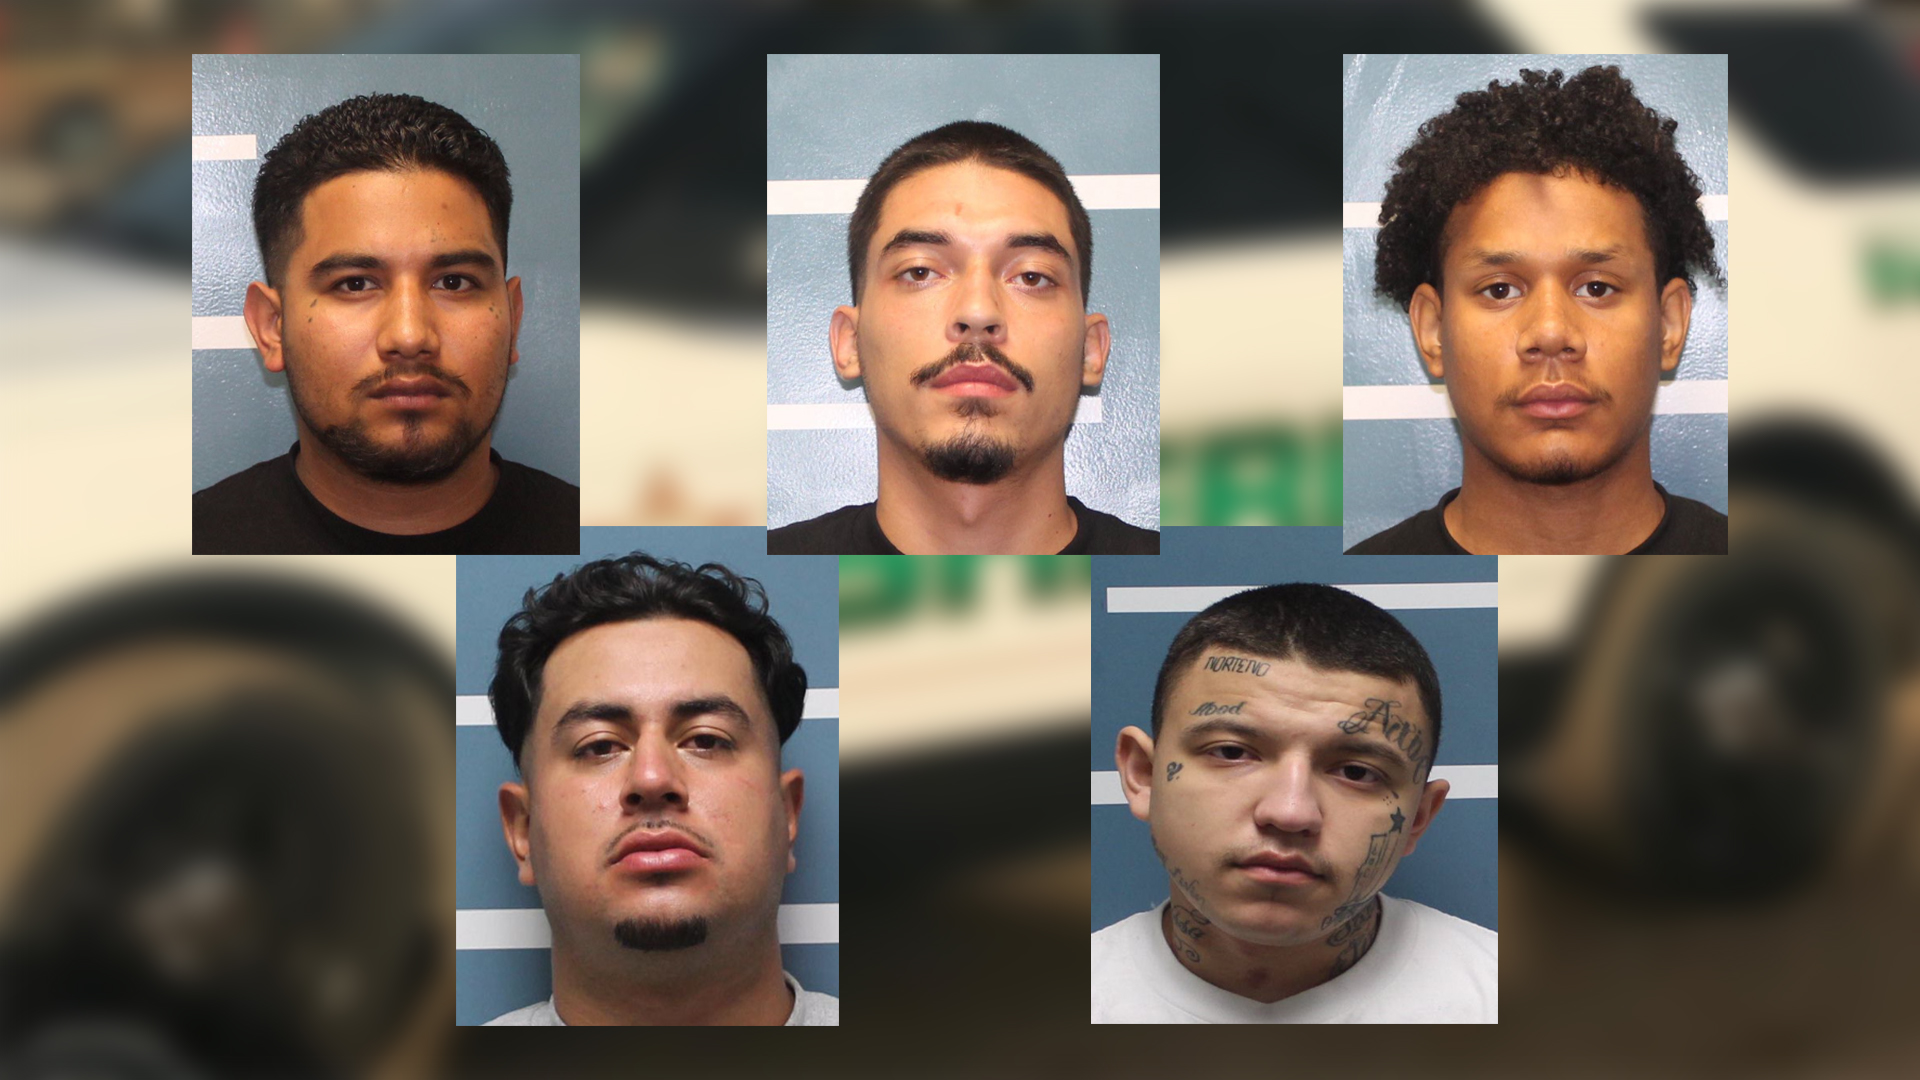 Man murdered during crime spree, 5 suspects identified, deputies say